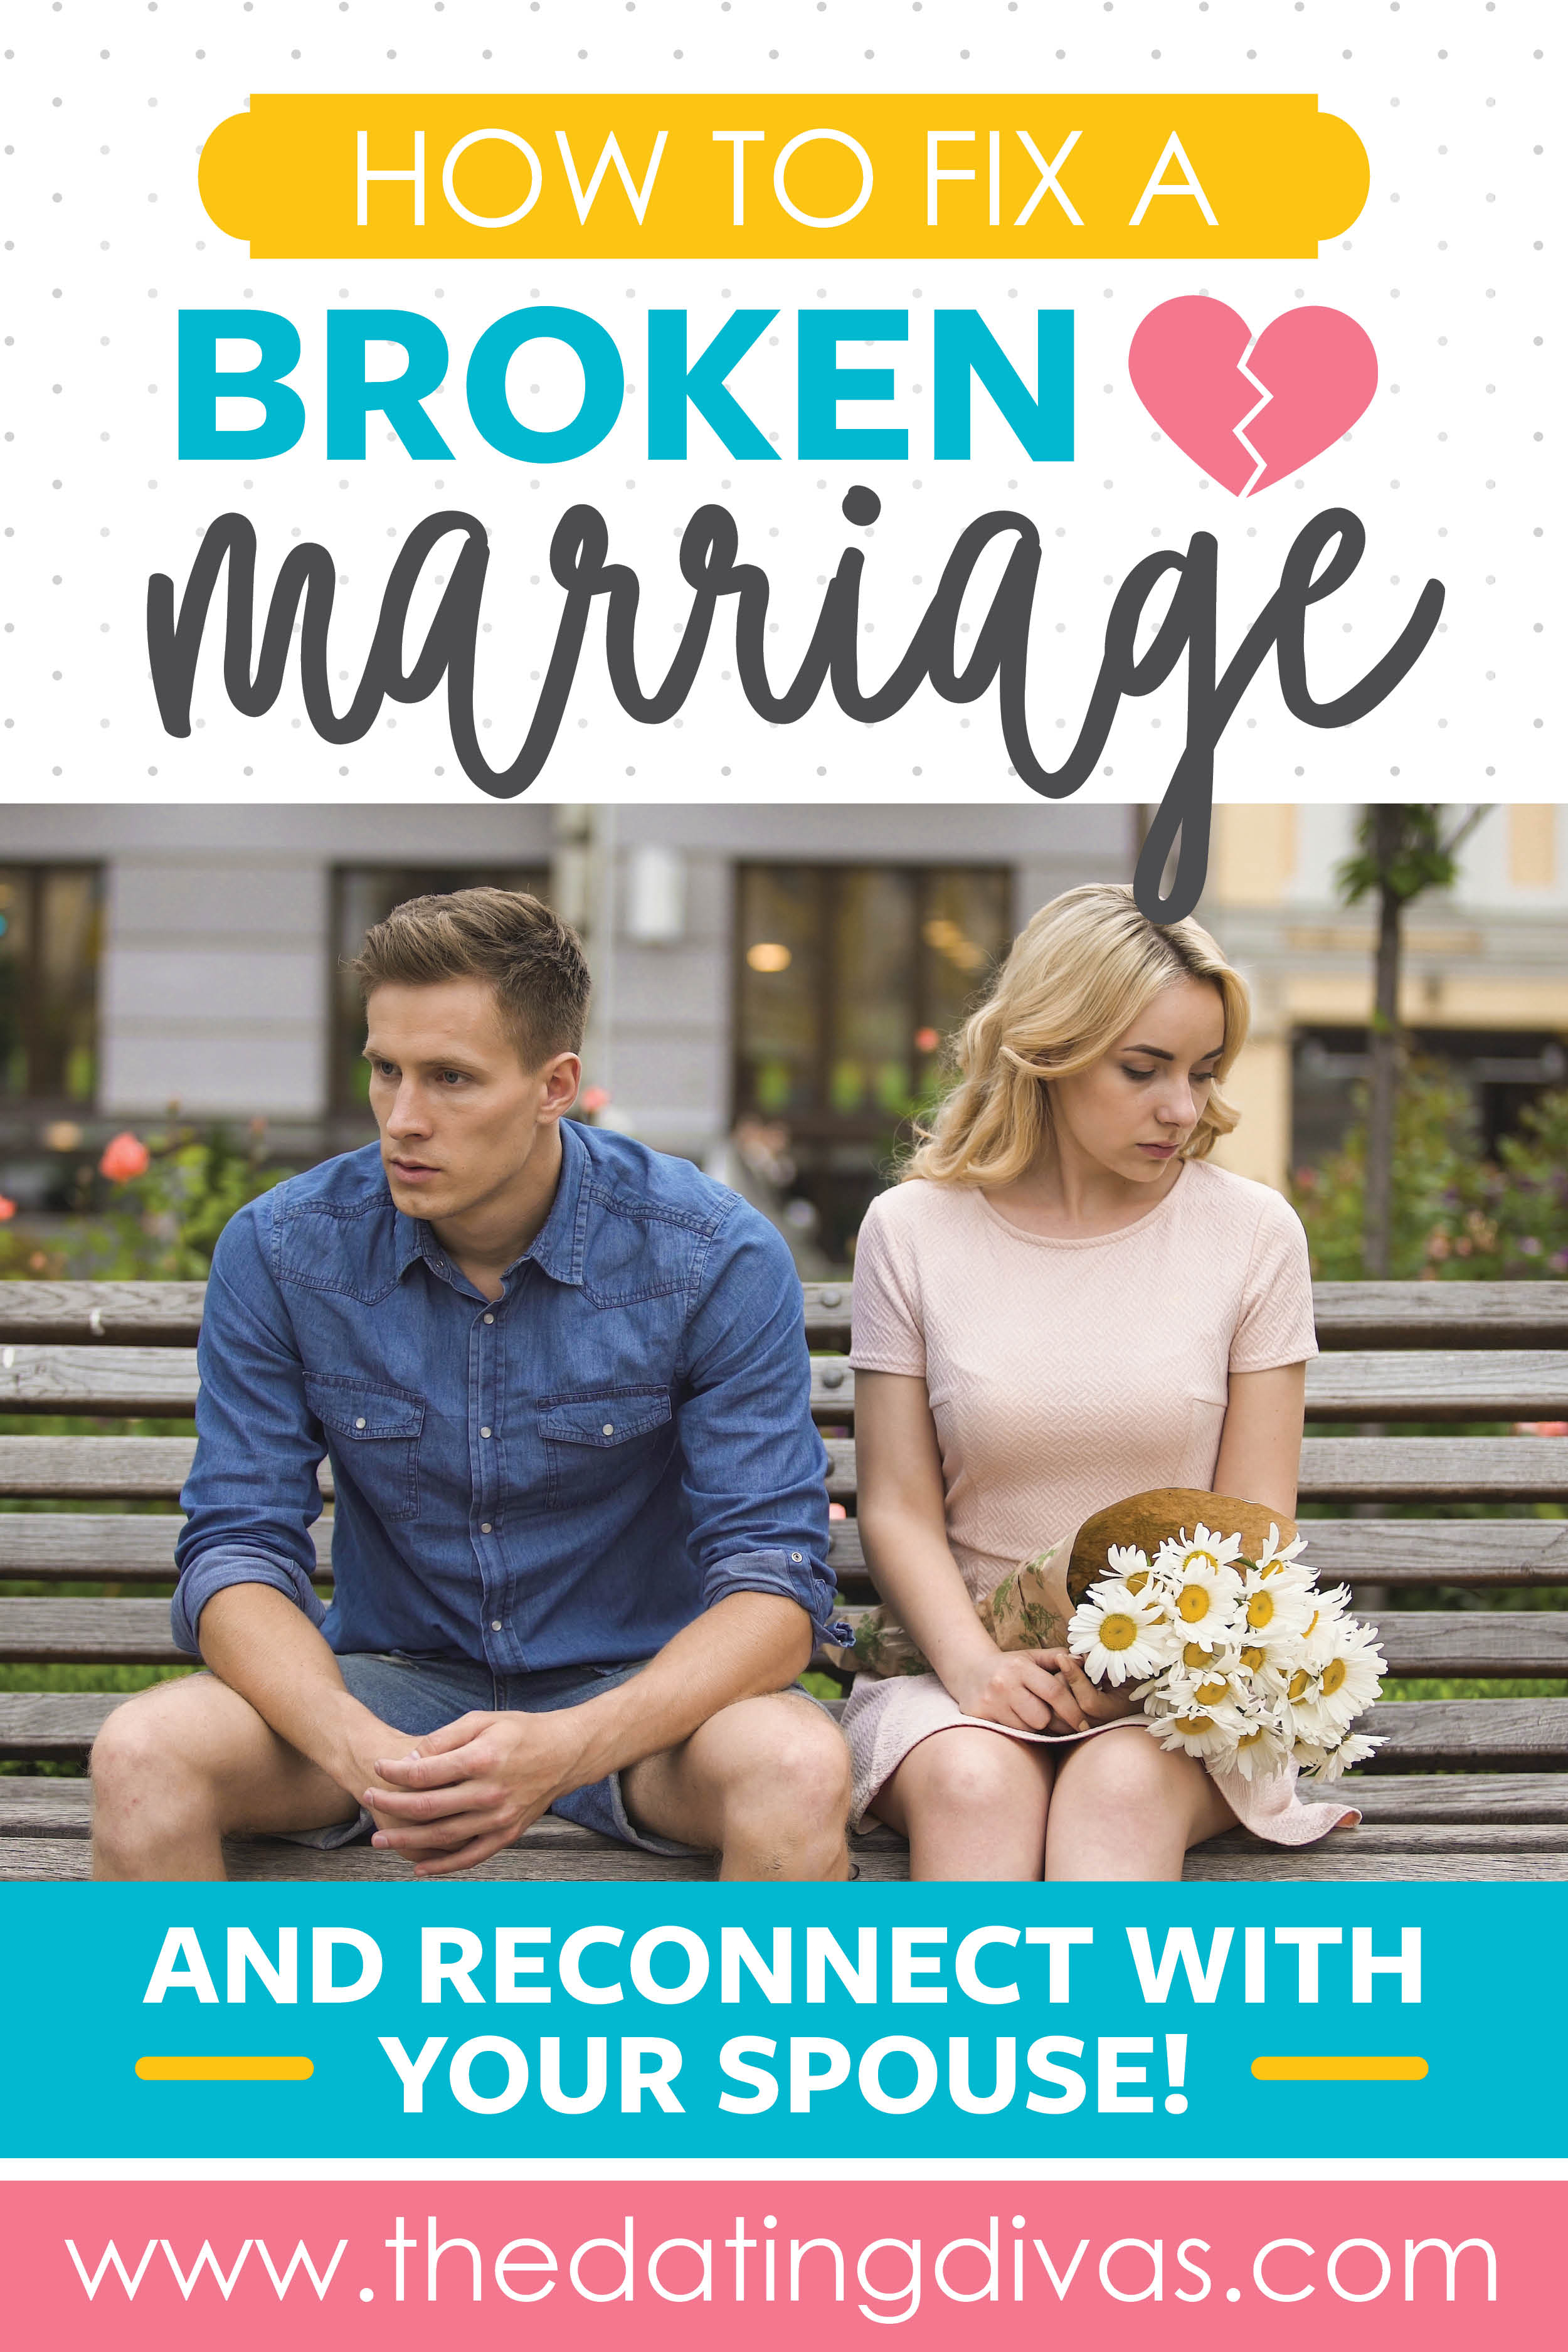 So many great ideas for making a change TODAY! #fixabrokenmarriage #marriageproblems